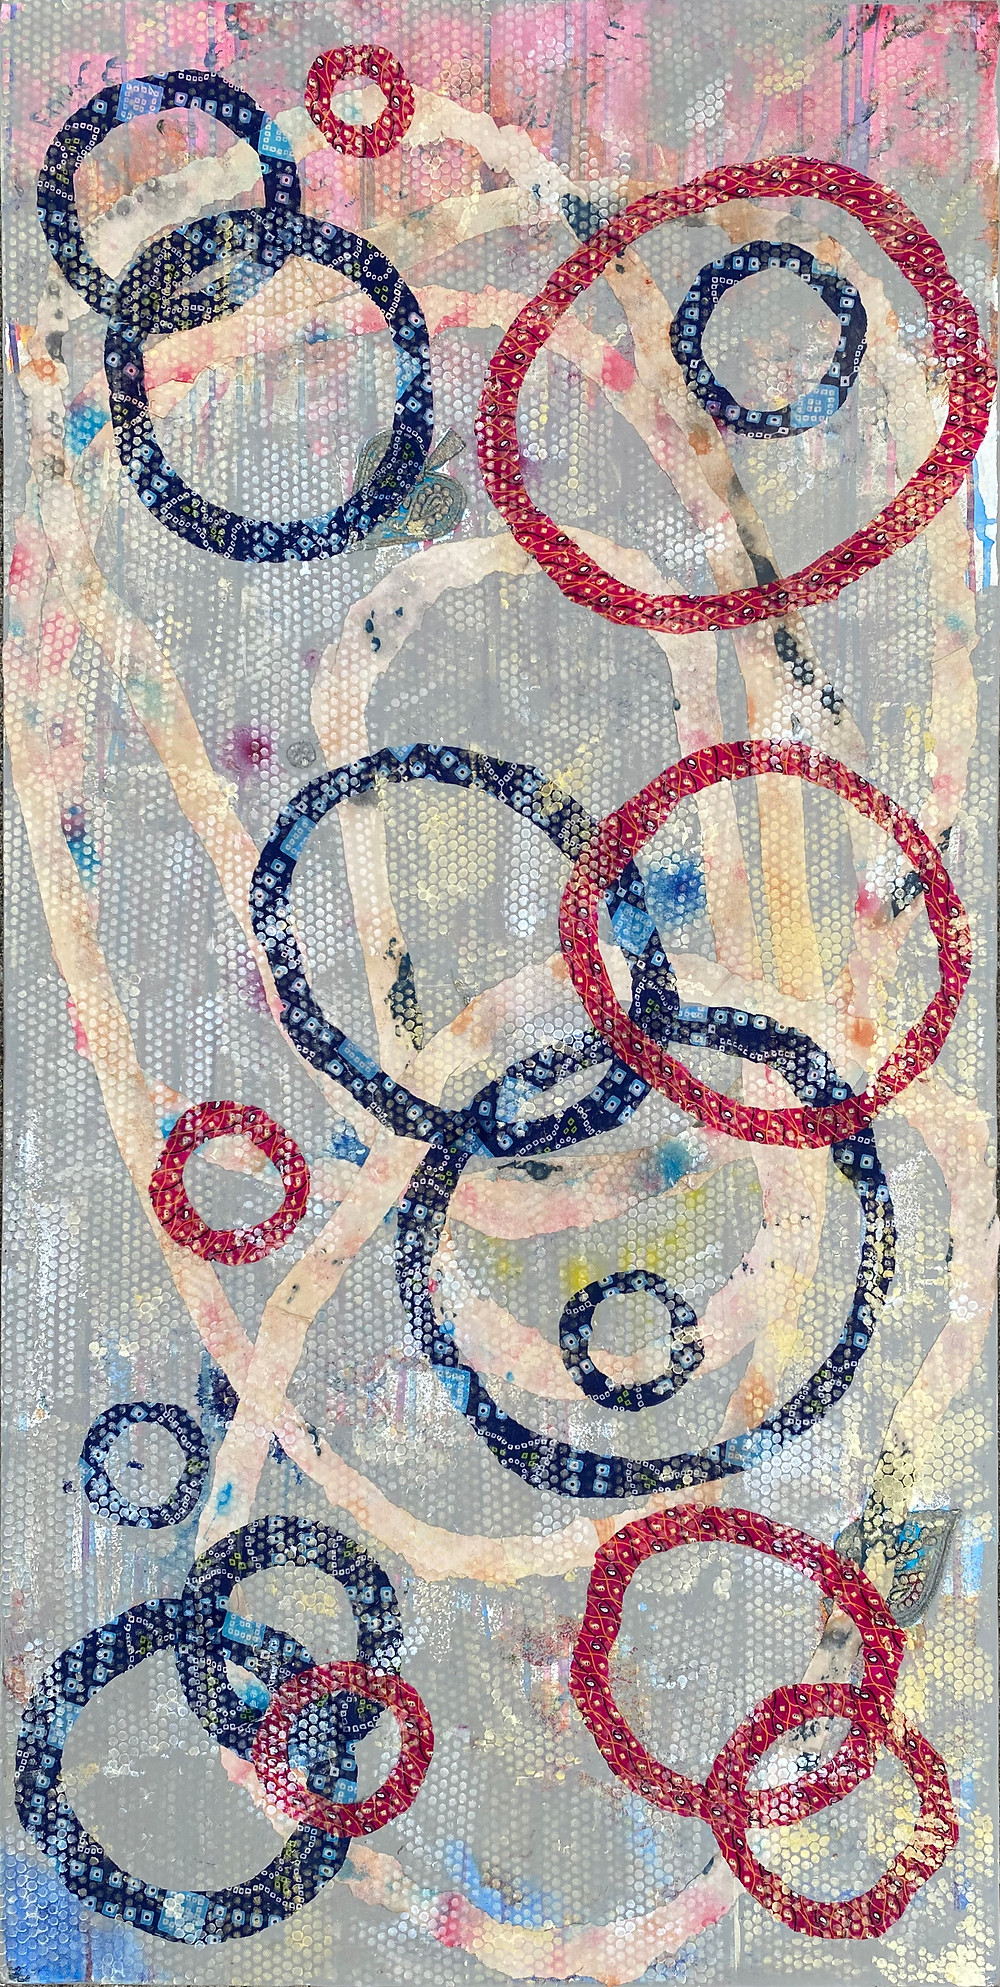 circles_8_24x48in_acrylic, paper and fabric on canvas_ritagpatel